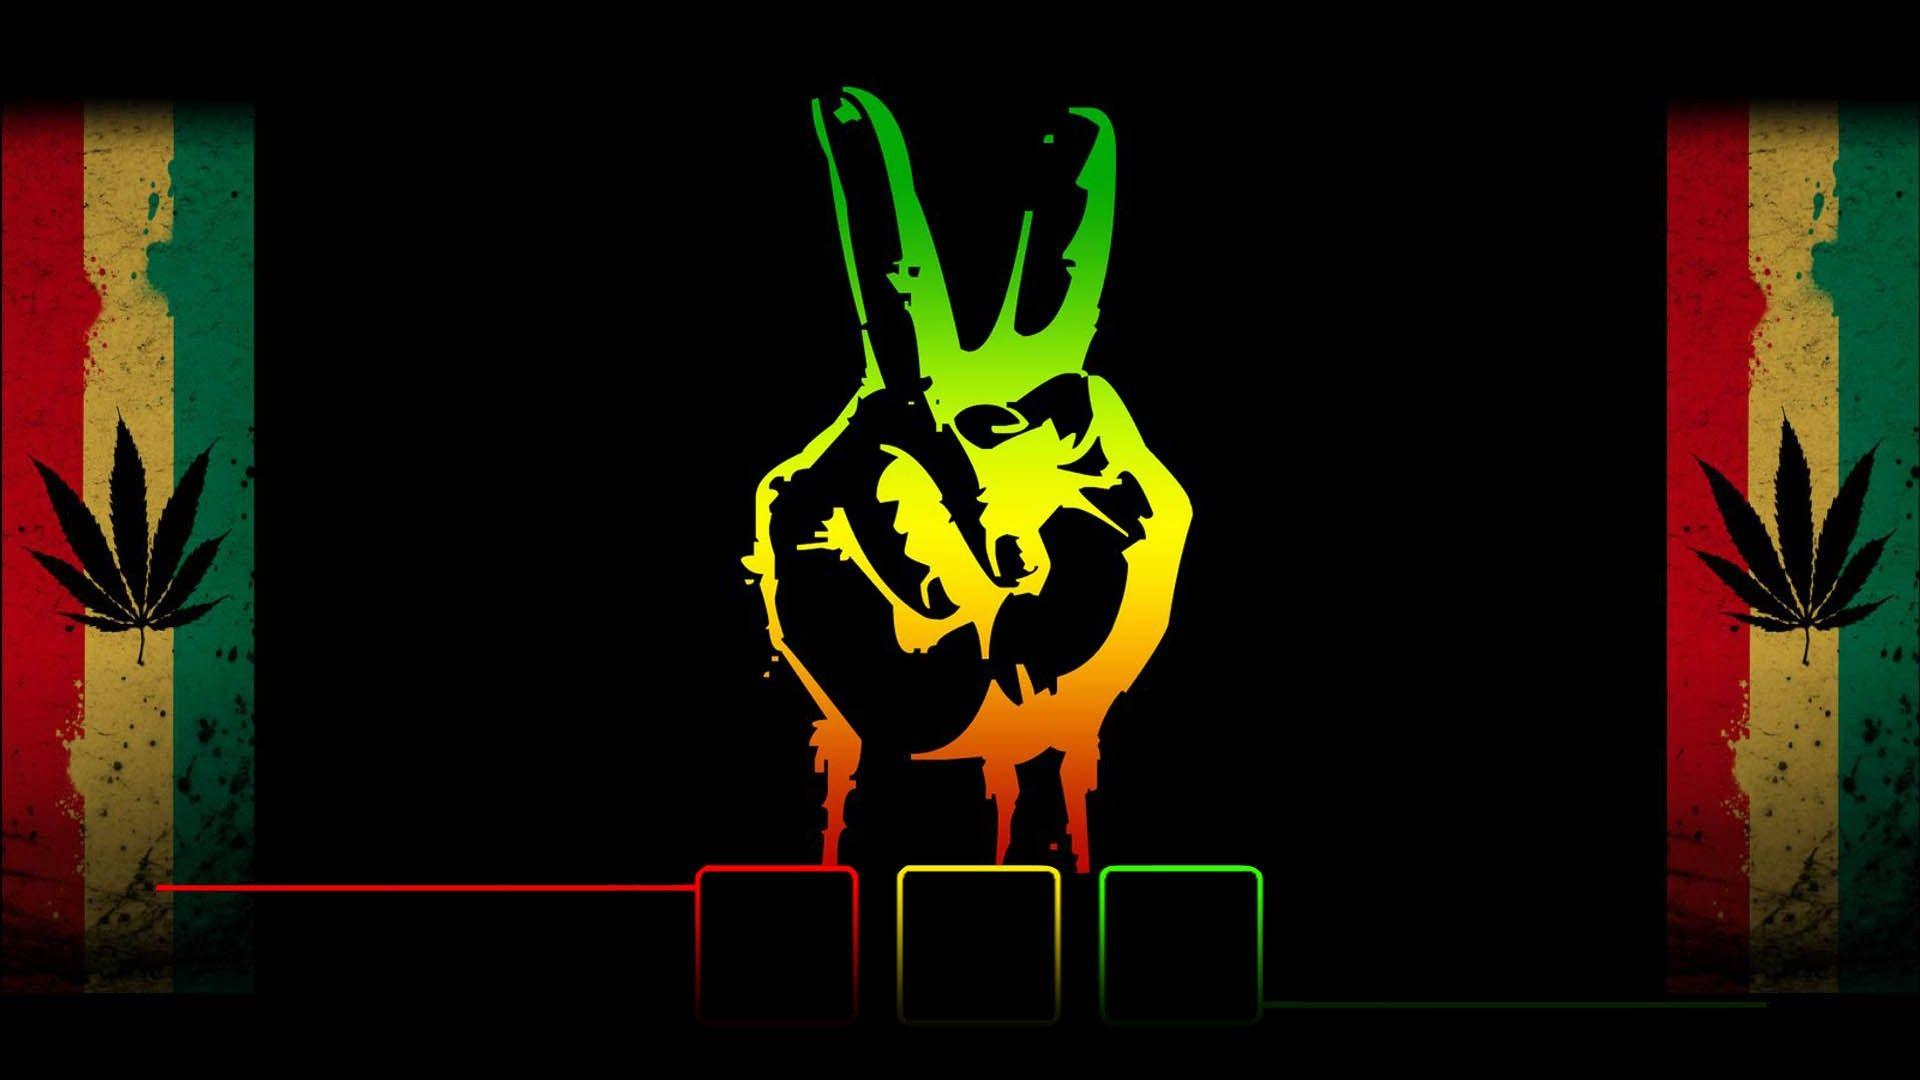 Trippy Rasta Weed Backgrounds HD Wallpaper Background Images